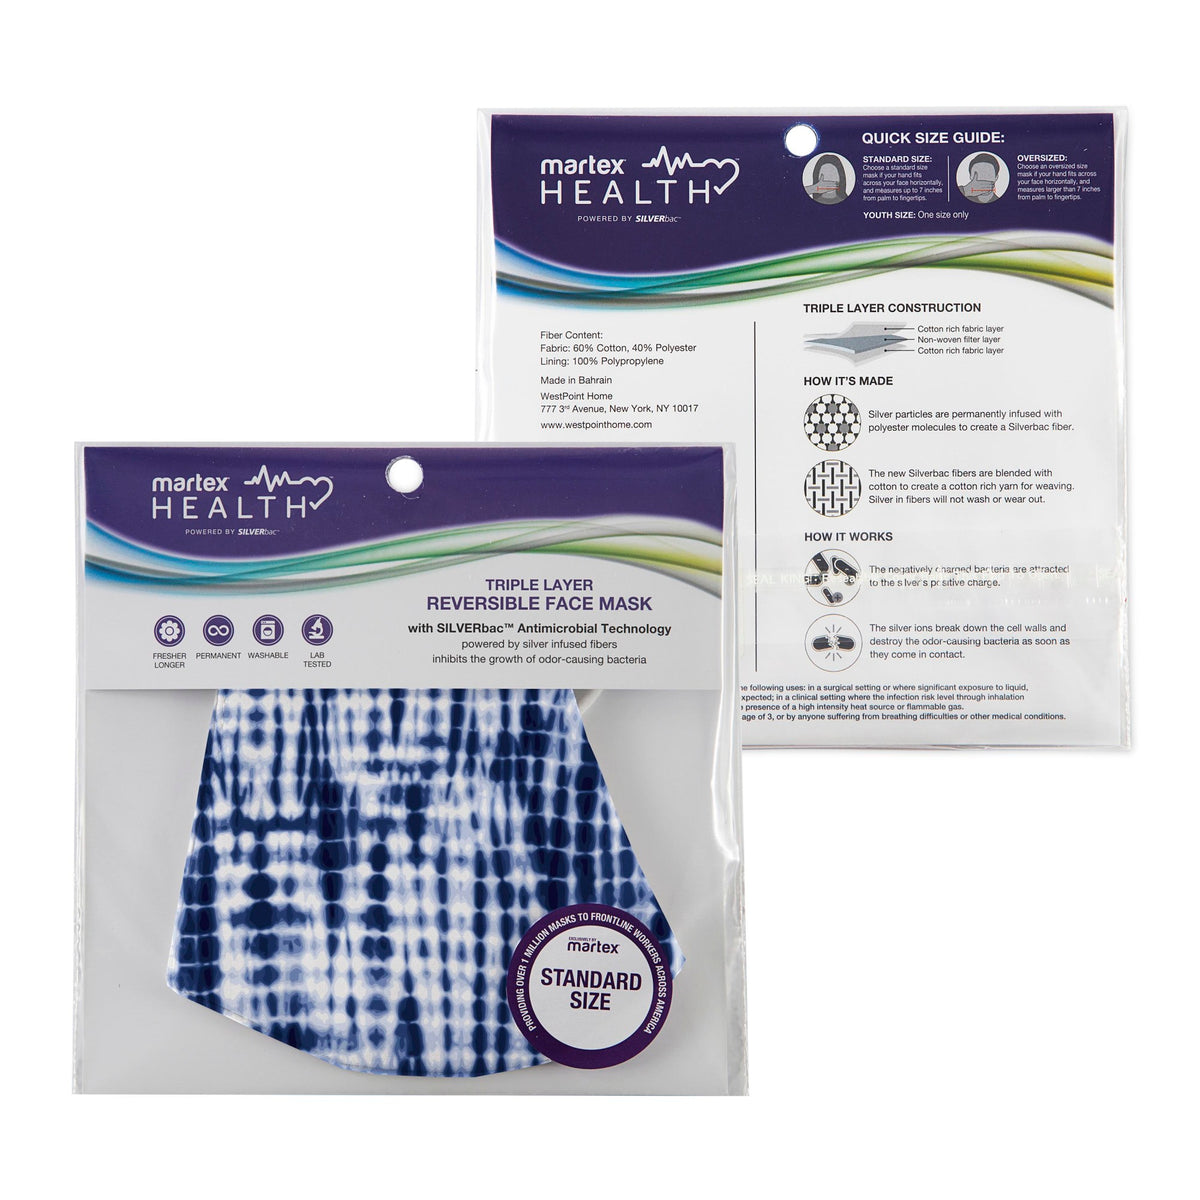 Martex Health Triple Layer Standard Tie Dye Face Mask with SILVERbac™ Antimicrobial Technology